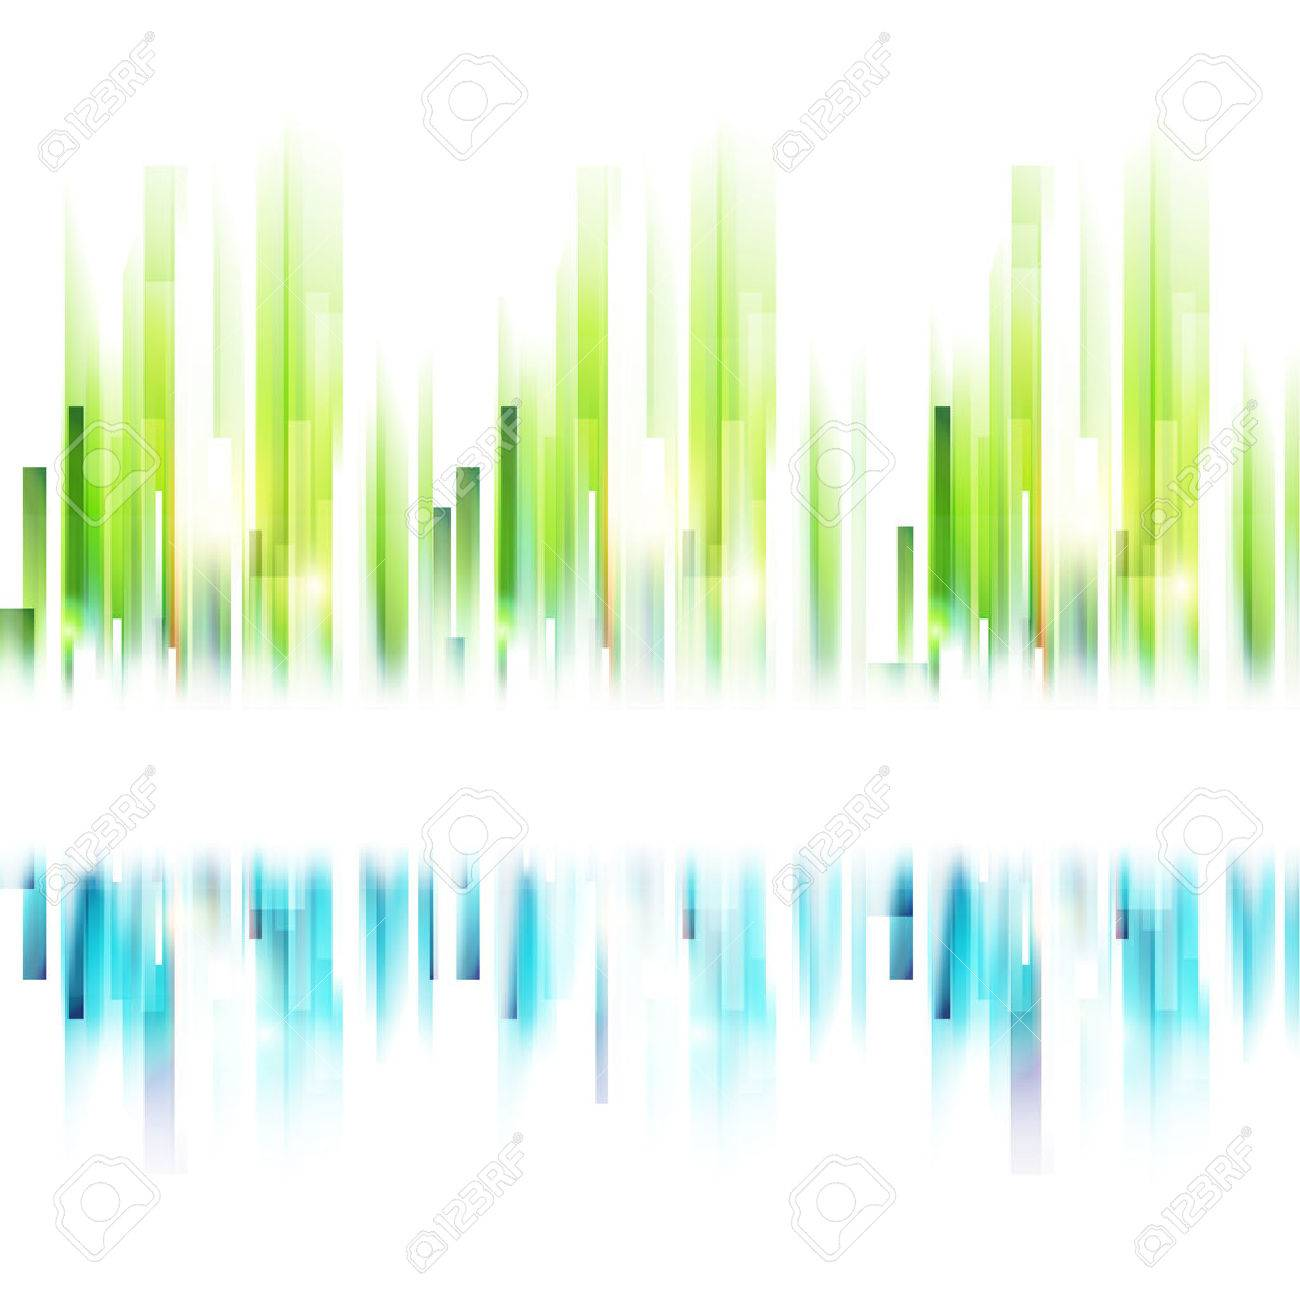 Seamless abstract urban silhouette. Vector ecology background. Blue and green lines with place for text. Abstract landscape concept - 35633803